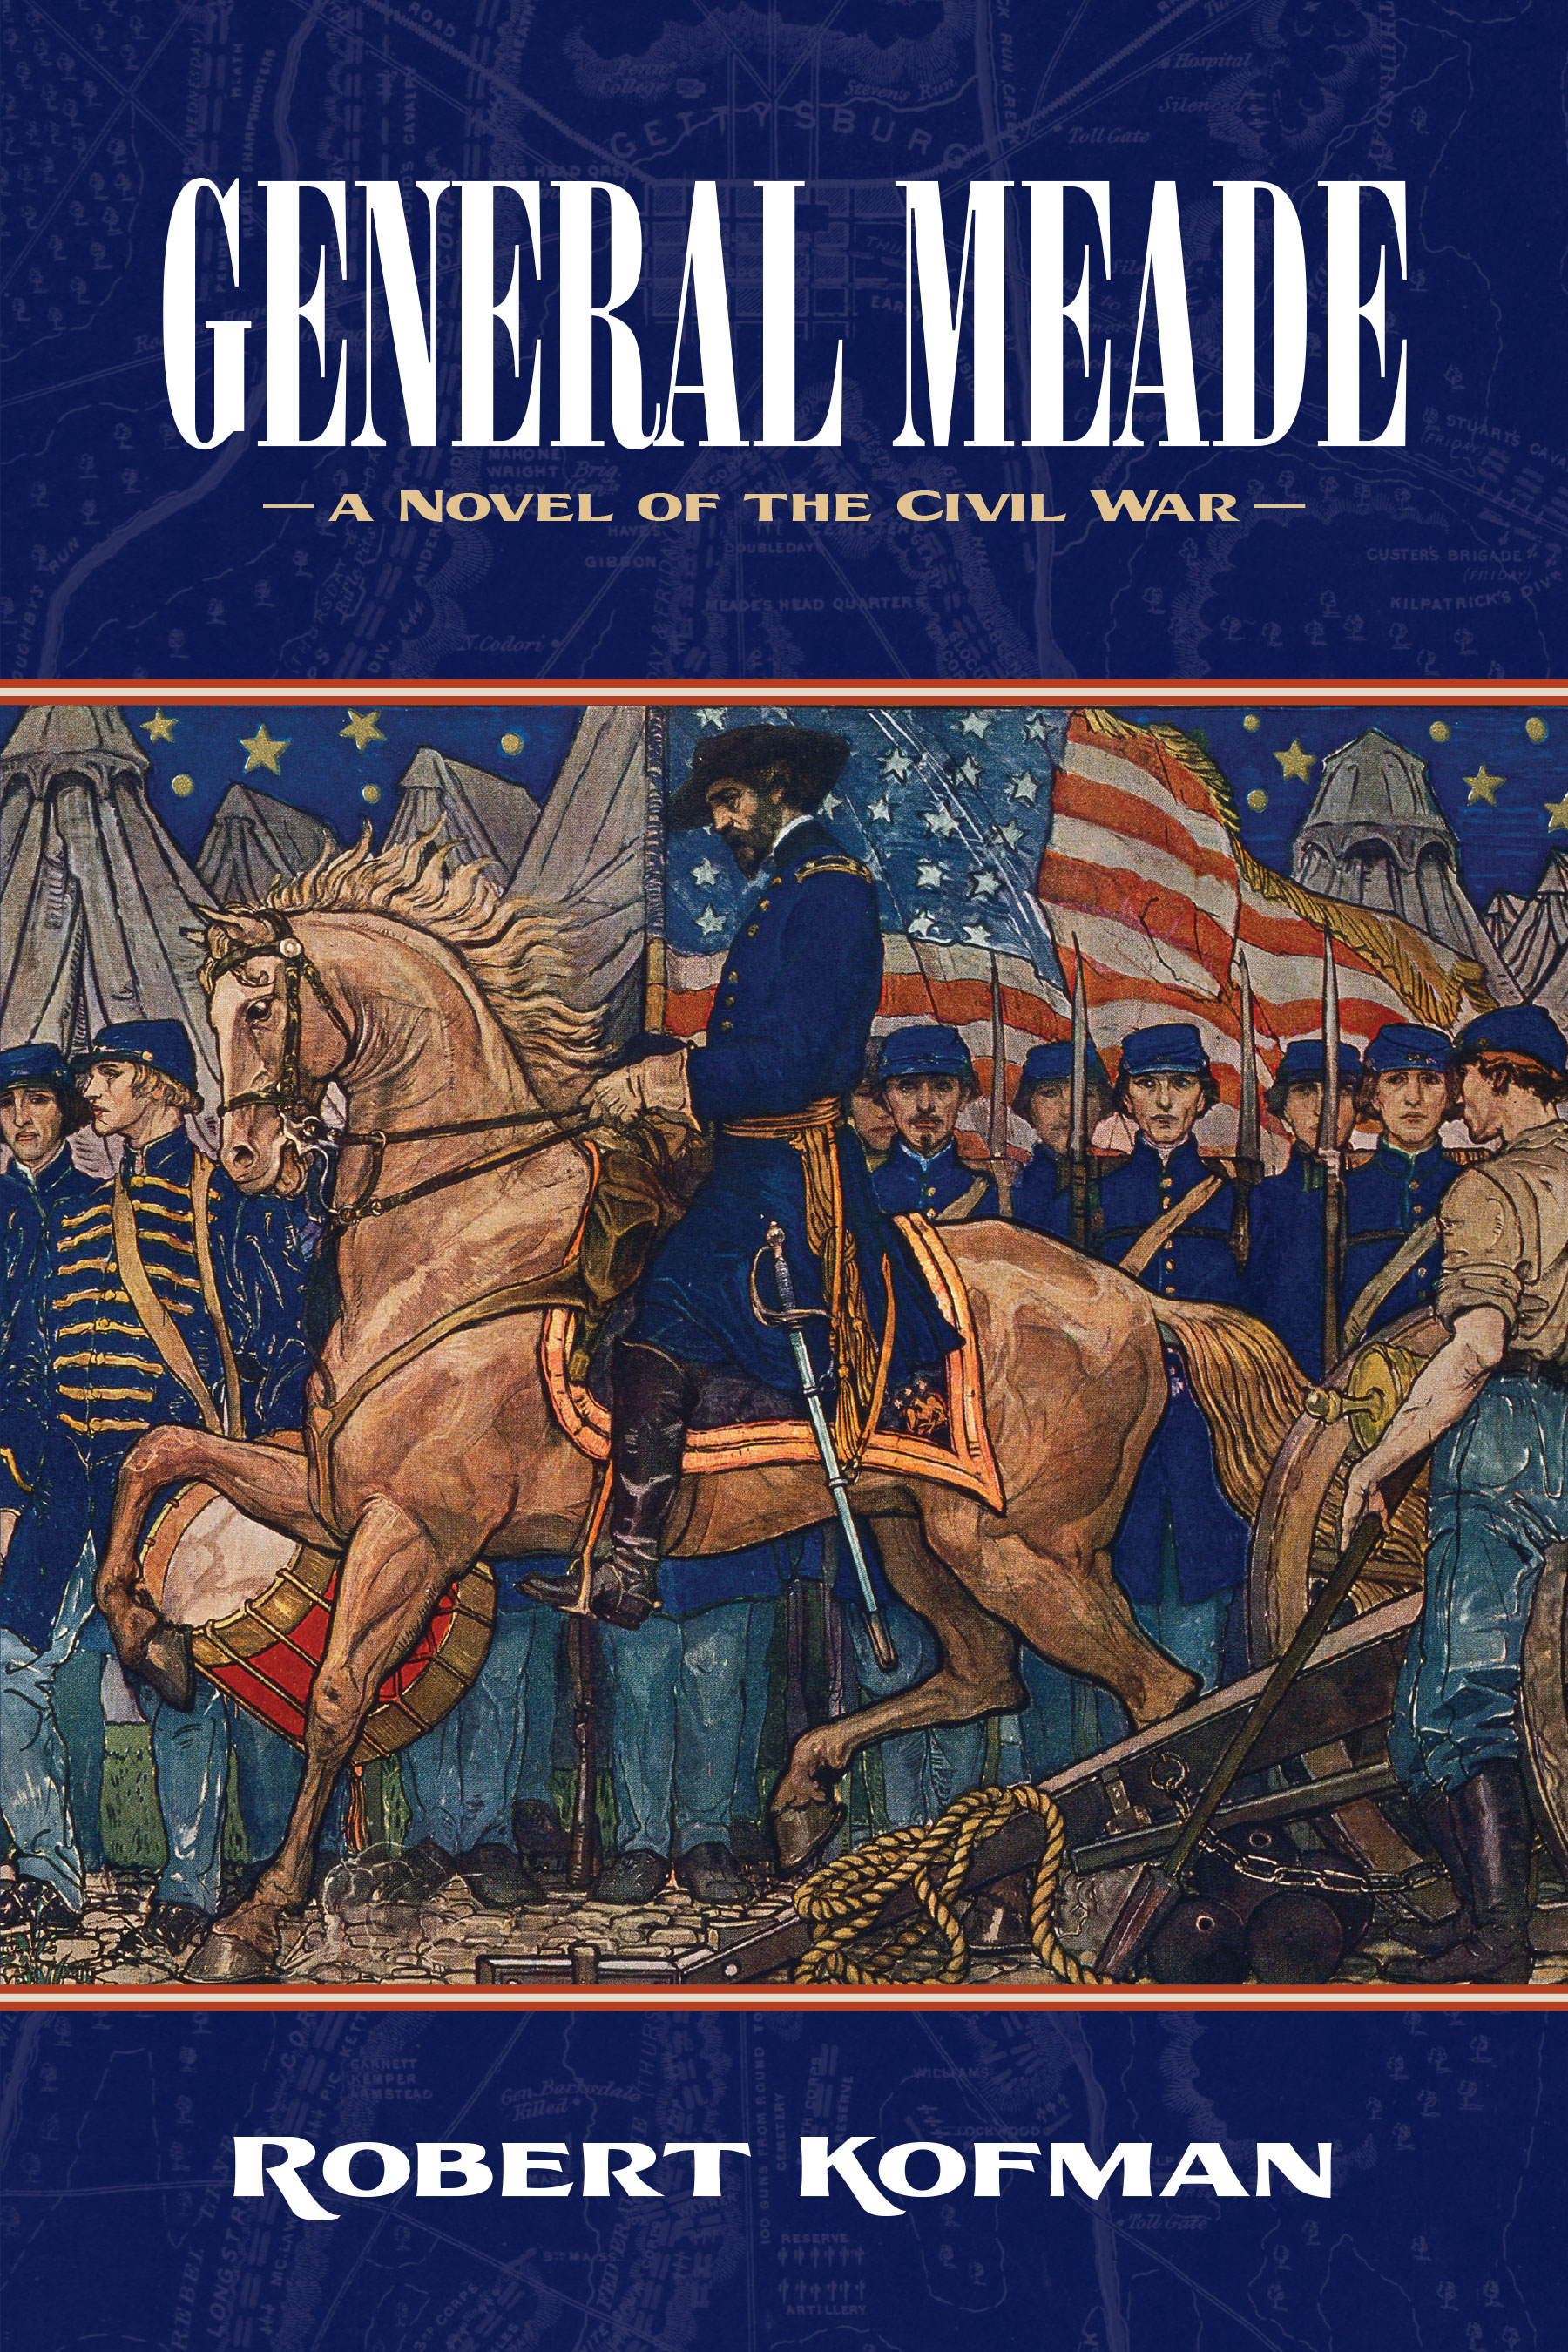 - As the Civil War rages on, President Lincoln desperately seeks a commander to defeat the seemingly invincible Confederate general, Robert E. Lee, whose army has invaded Pennsylvania. Lincoln turns to the Old Snapping Turtle, General George Meade—a courageous man with remarkable integrity and a fiery temper—to save the Union during its greatest time of need.